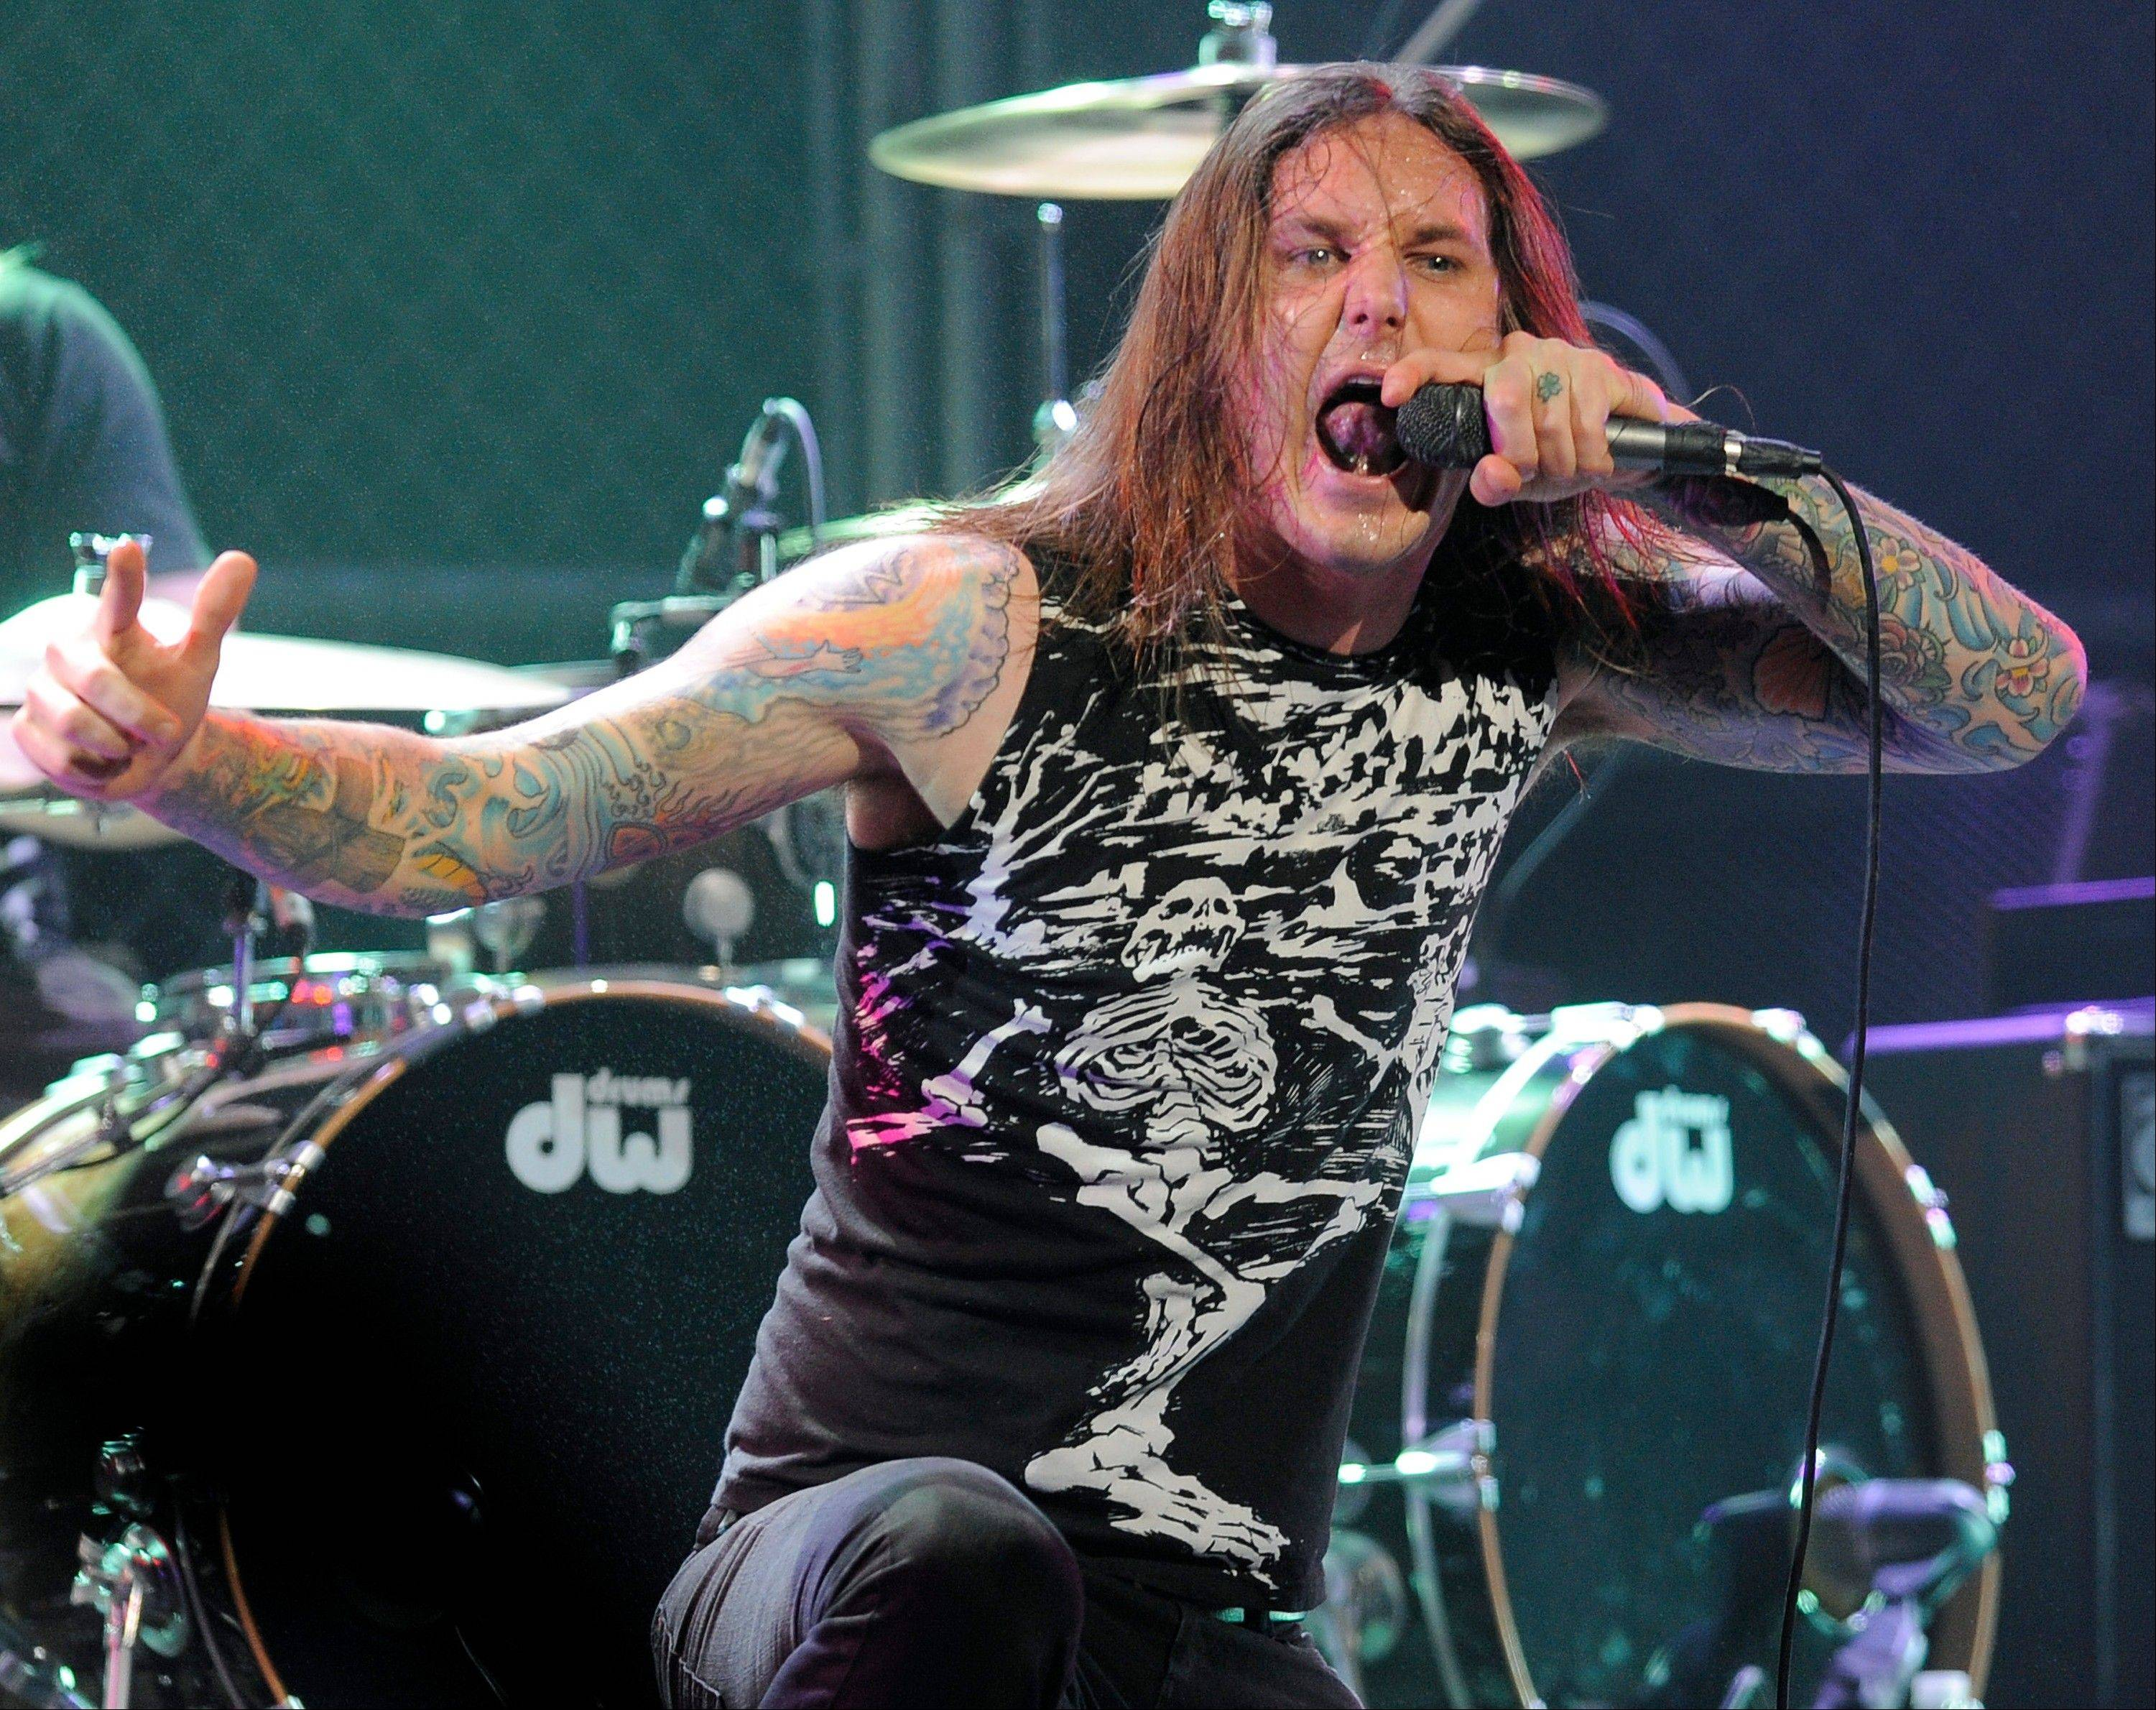 Authorities say Tim Lambesis, the singer of Grammy-nominated heavy metal band As I Lay Dying, was arrested Tuesday in Southern California after trying to hire an undercover detective to kill his estranged wife.